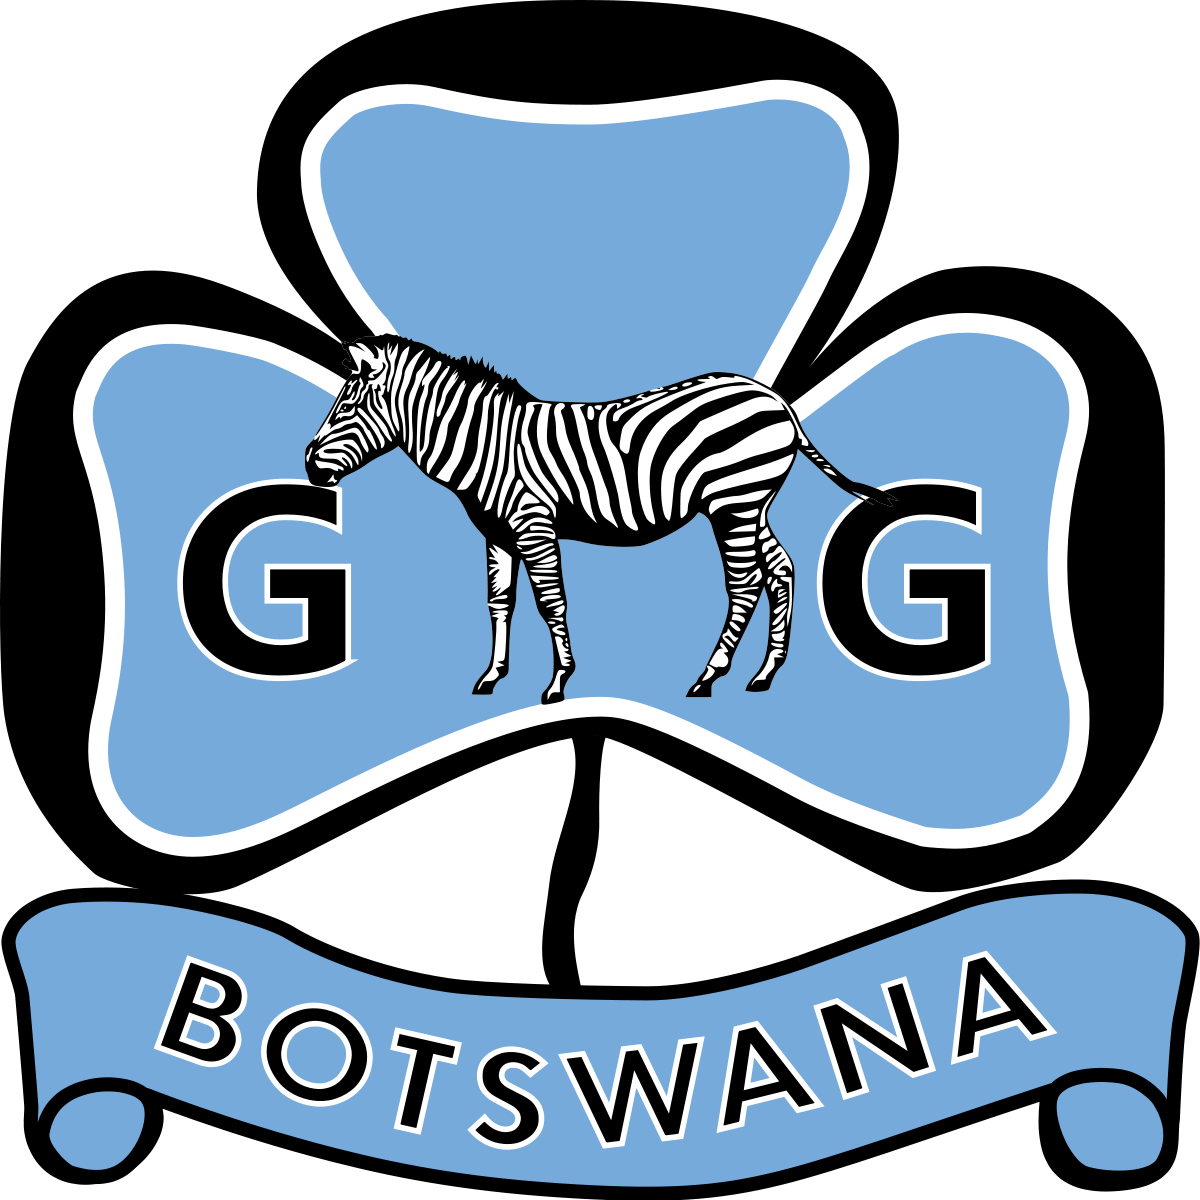 1200x1200 Botswana Girl Guides Association